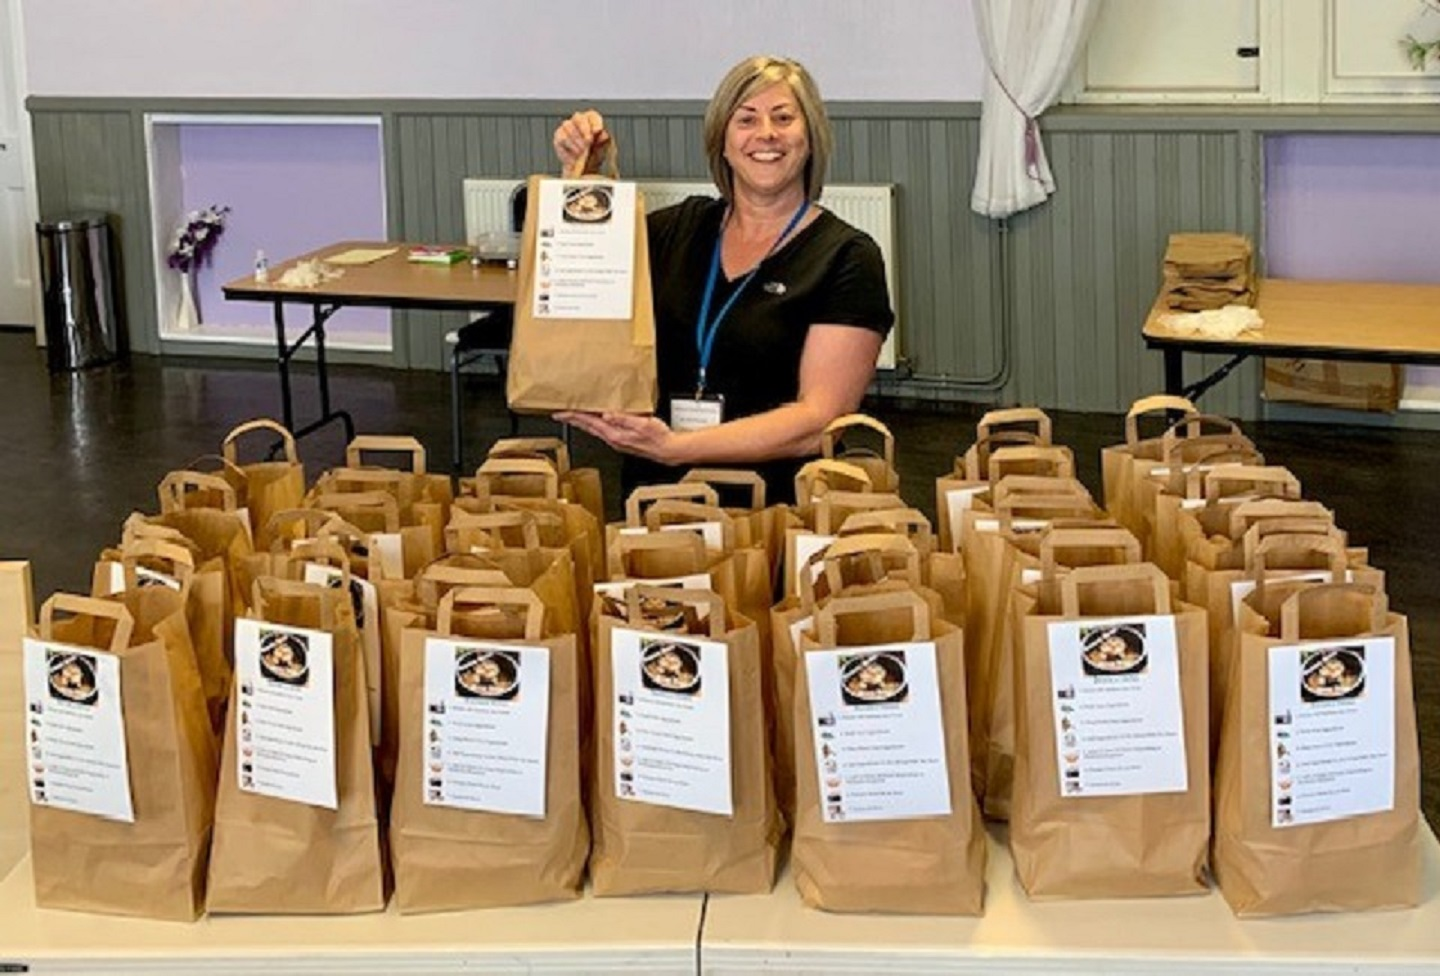 Teresa Sharp has put together soup kits for local families.